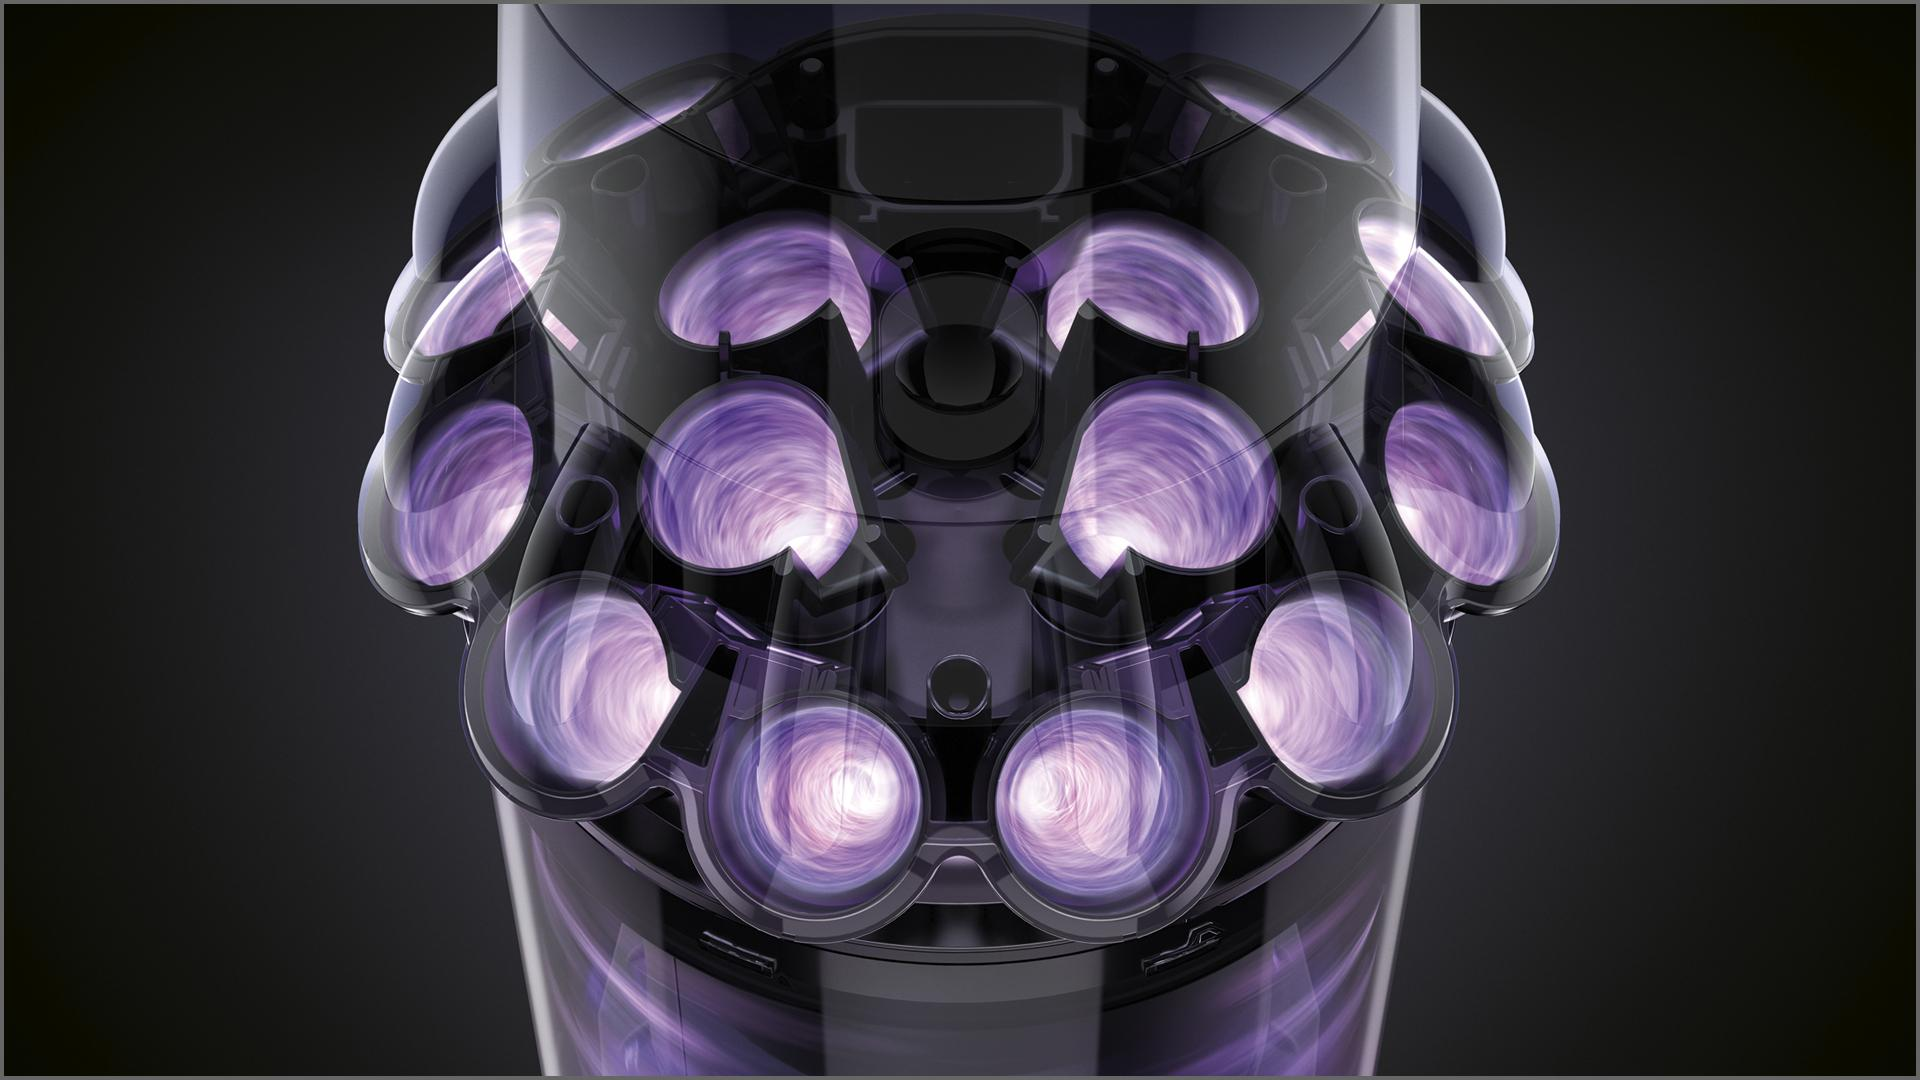 The technology behind the Dyson V11™ vacuum